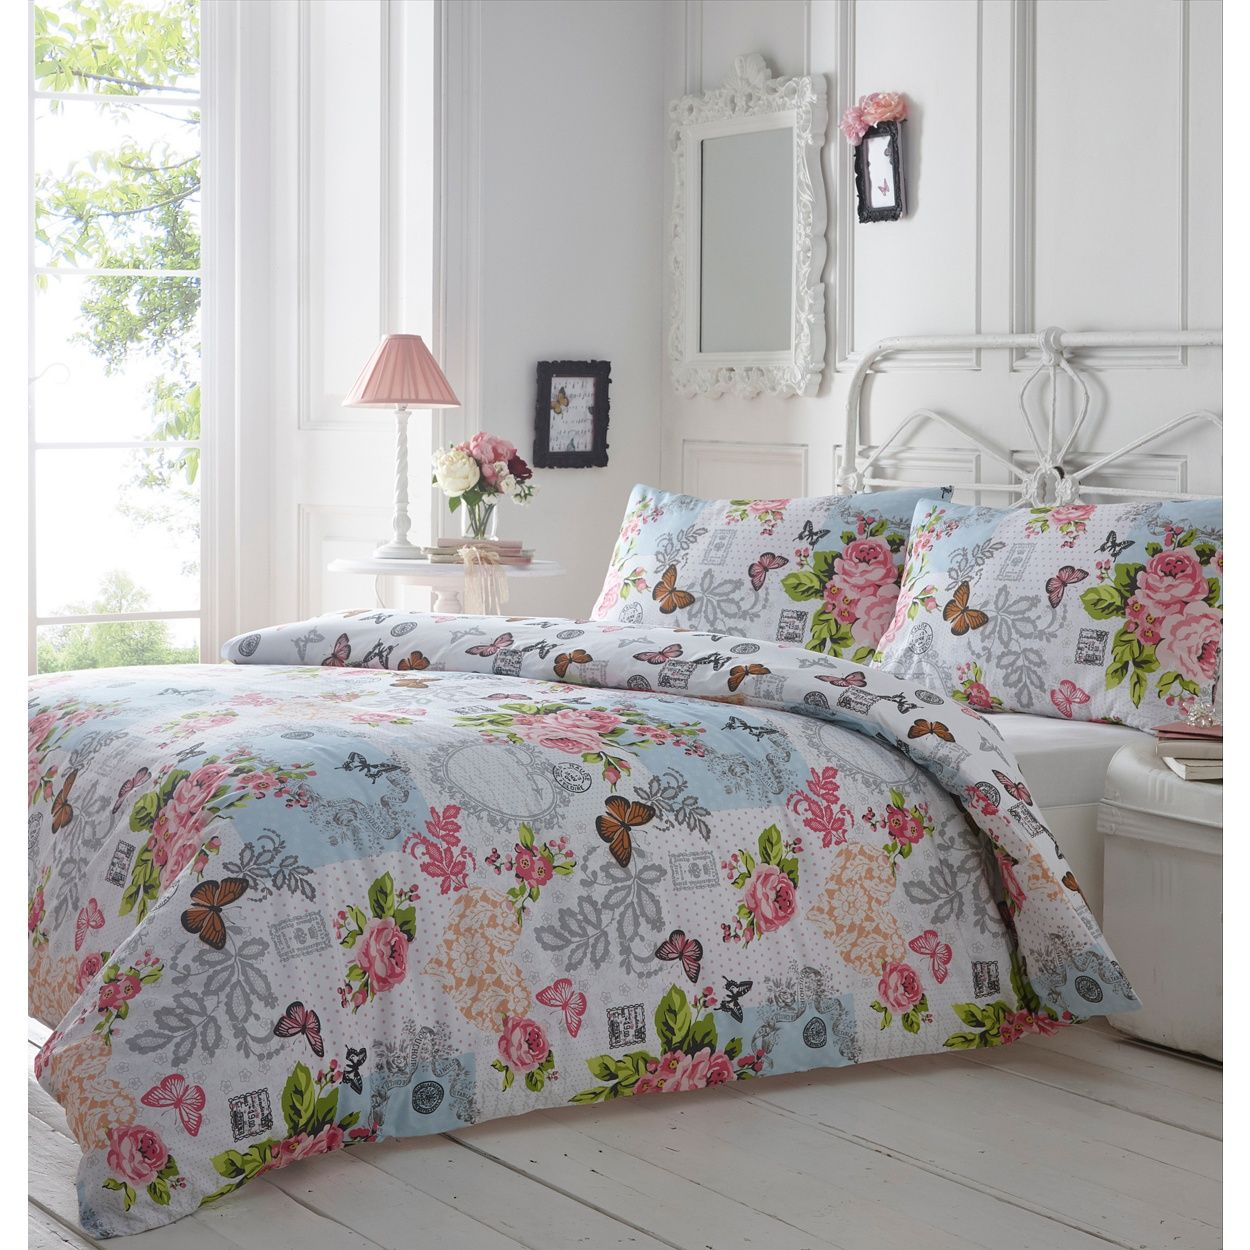 Part of our vintage-inspired collection, this poly-cotton bedding set features a multi-coloured print full of whimsical charm. With floral, butterfly and heart motifs on a pink polka-dot base, it is perfect for brightening up bedrooms.